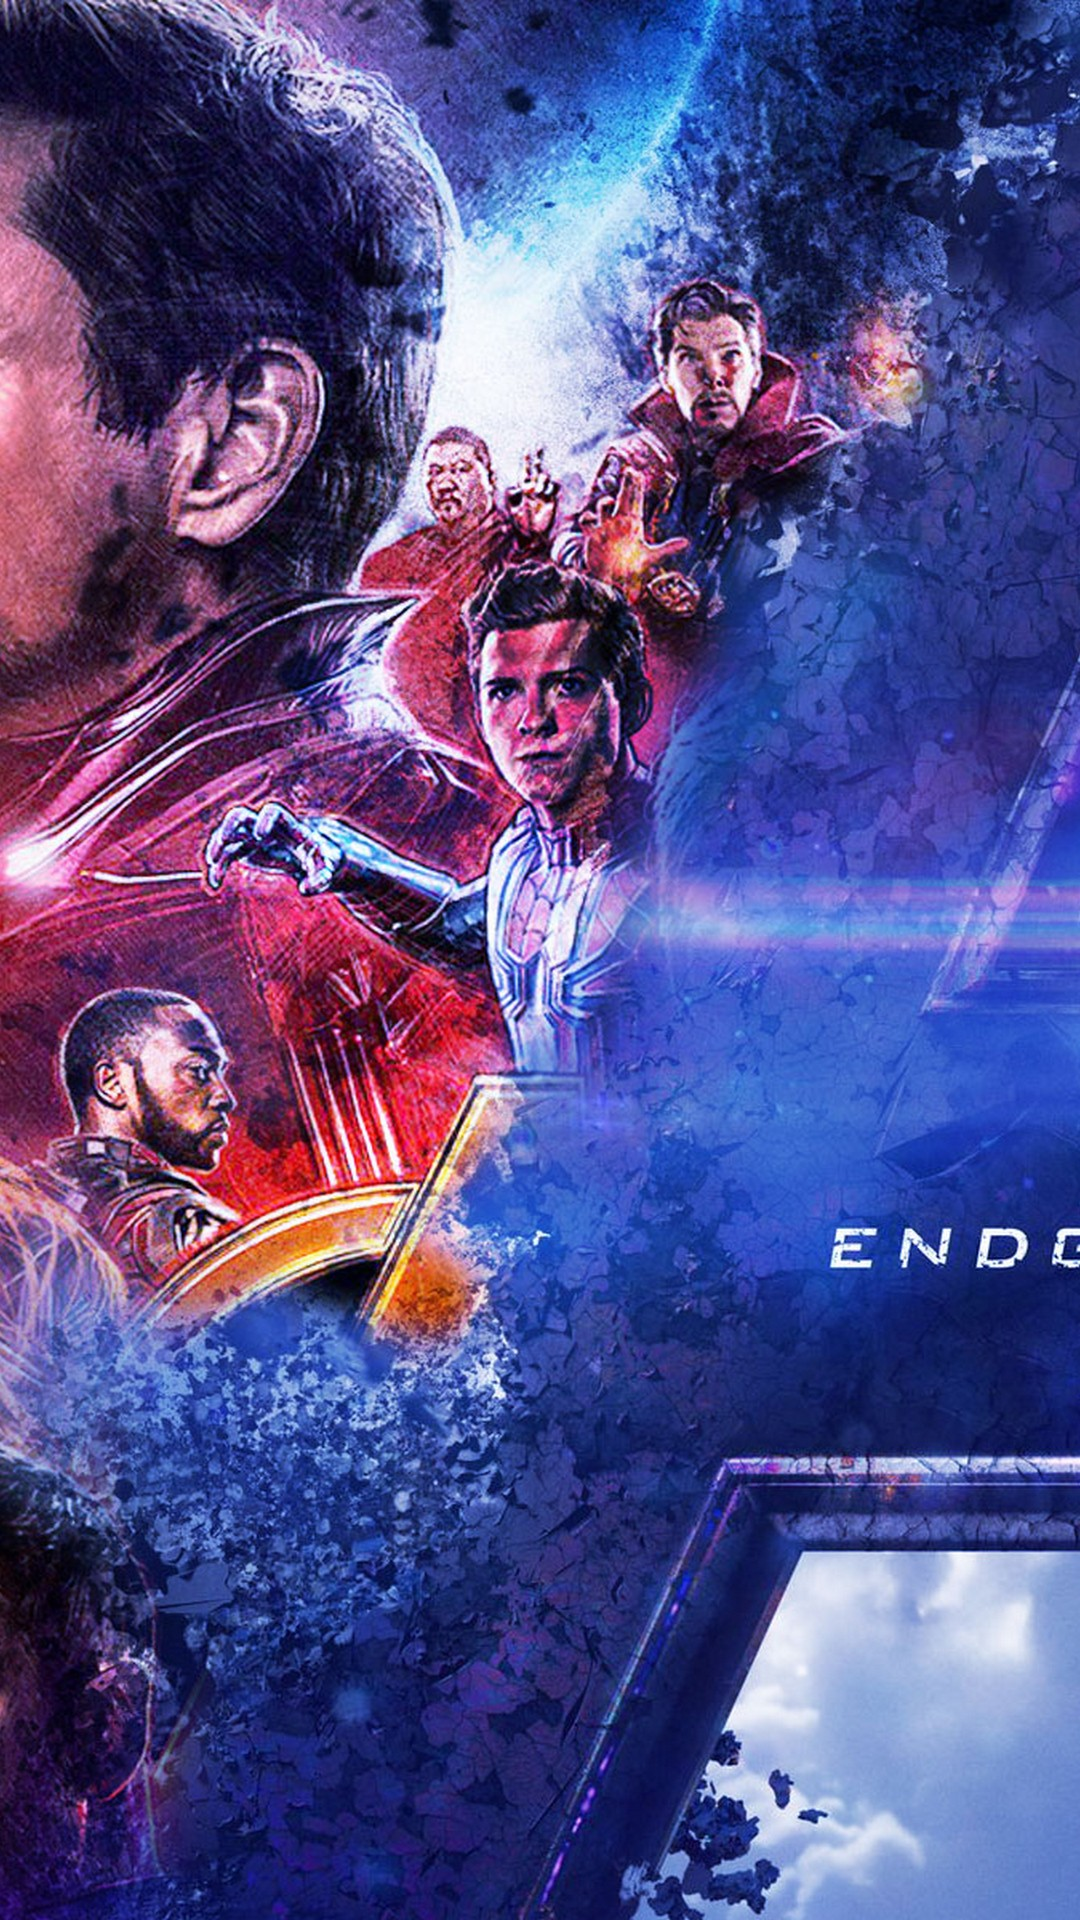 Wallpapers Phone Avengers Endgame   2019 Android Wallpapers 1080x1920